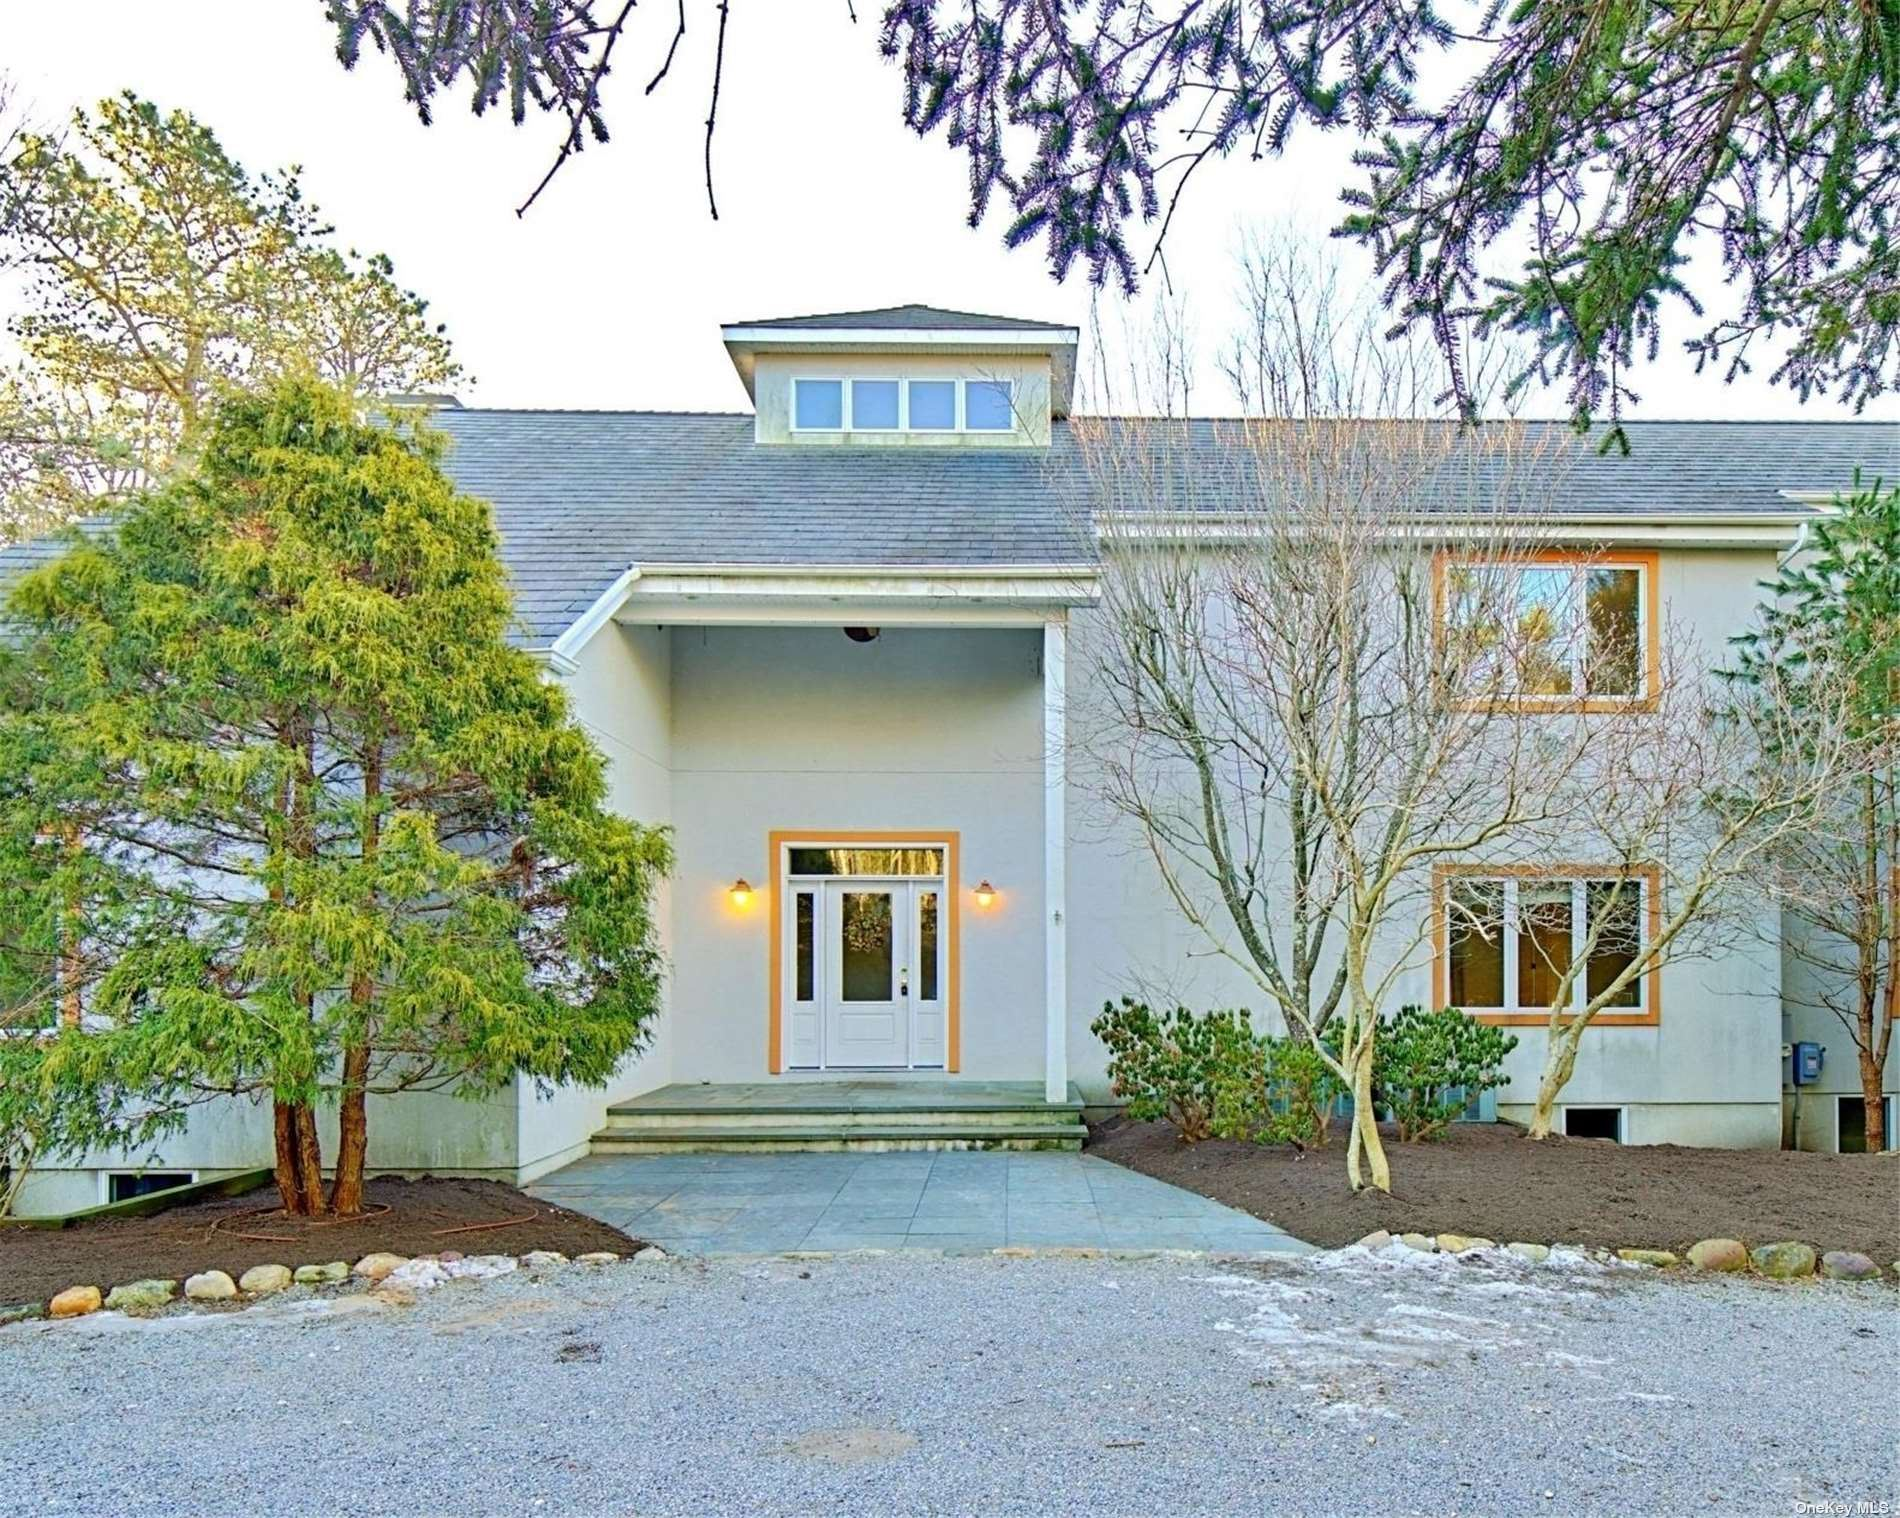 19 The Registry, East Quogue, NY 11942 - MLS#: 3294304